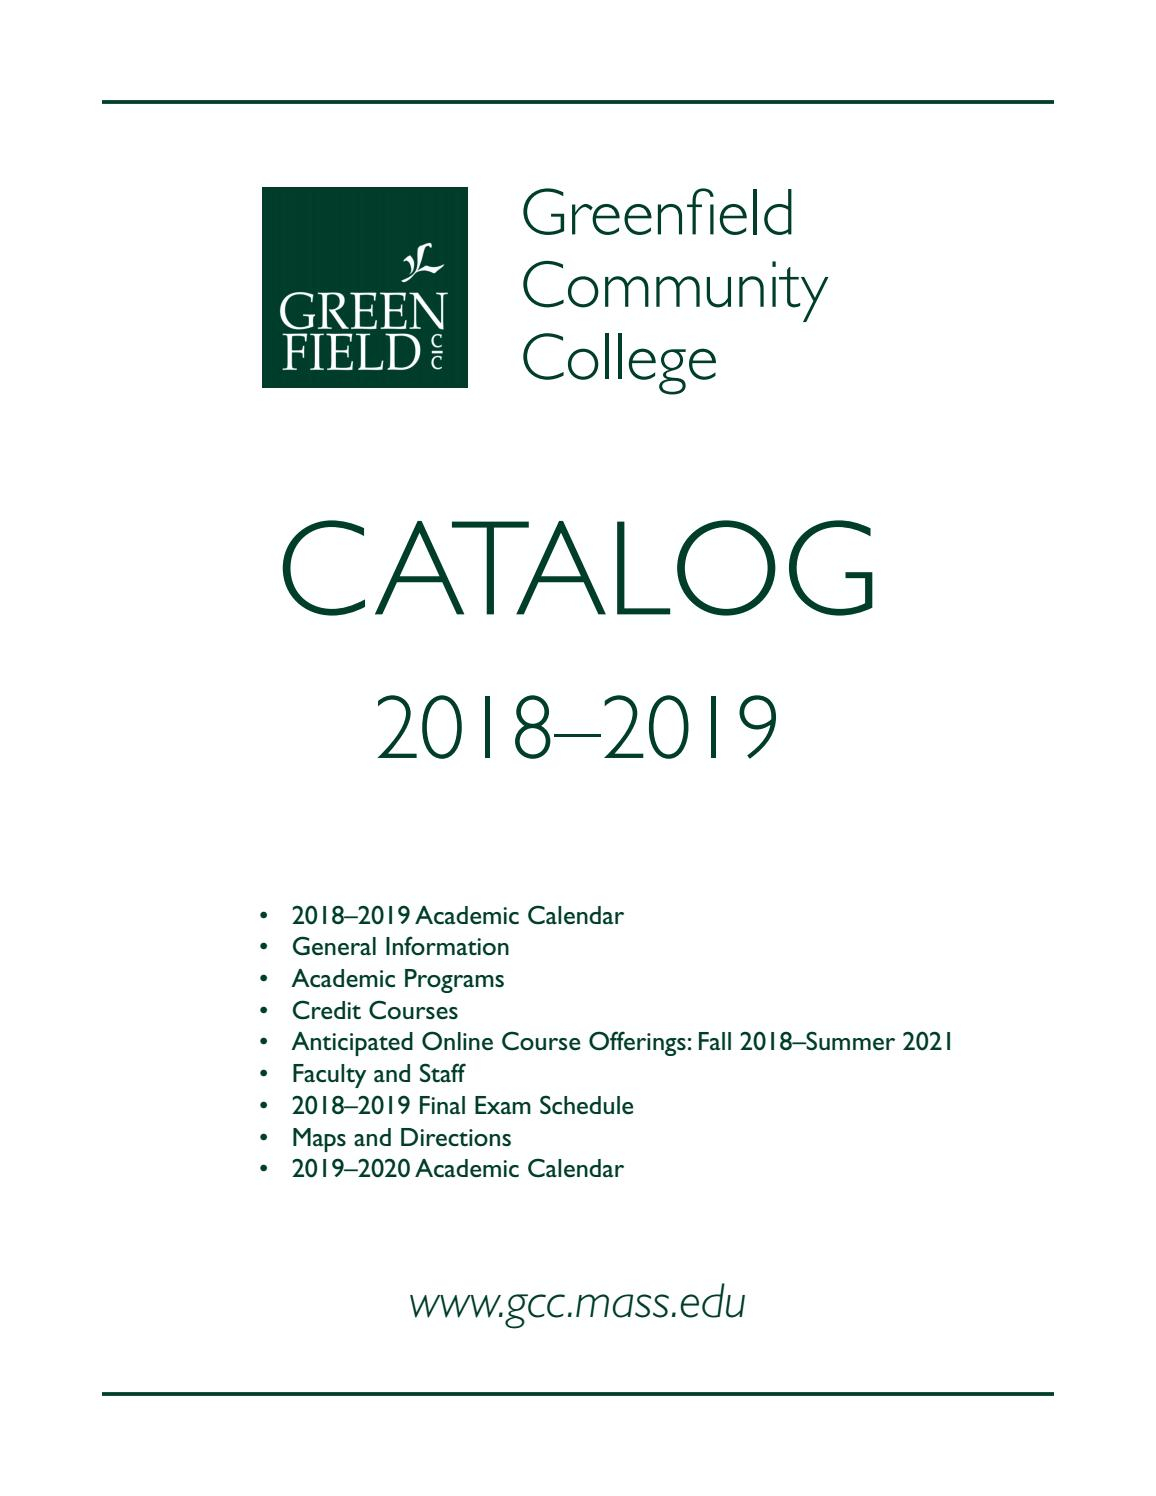 2018 19 Gcc Cataloggreenfield Community College – Issuu Inside University Of Southern Maine Academic Calendar 2021